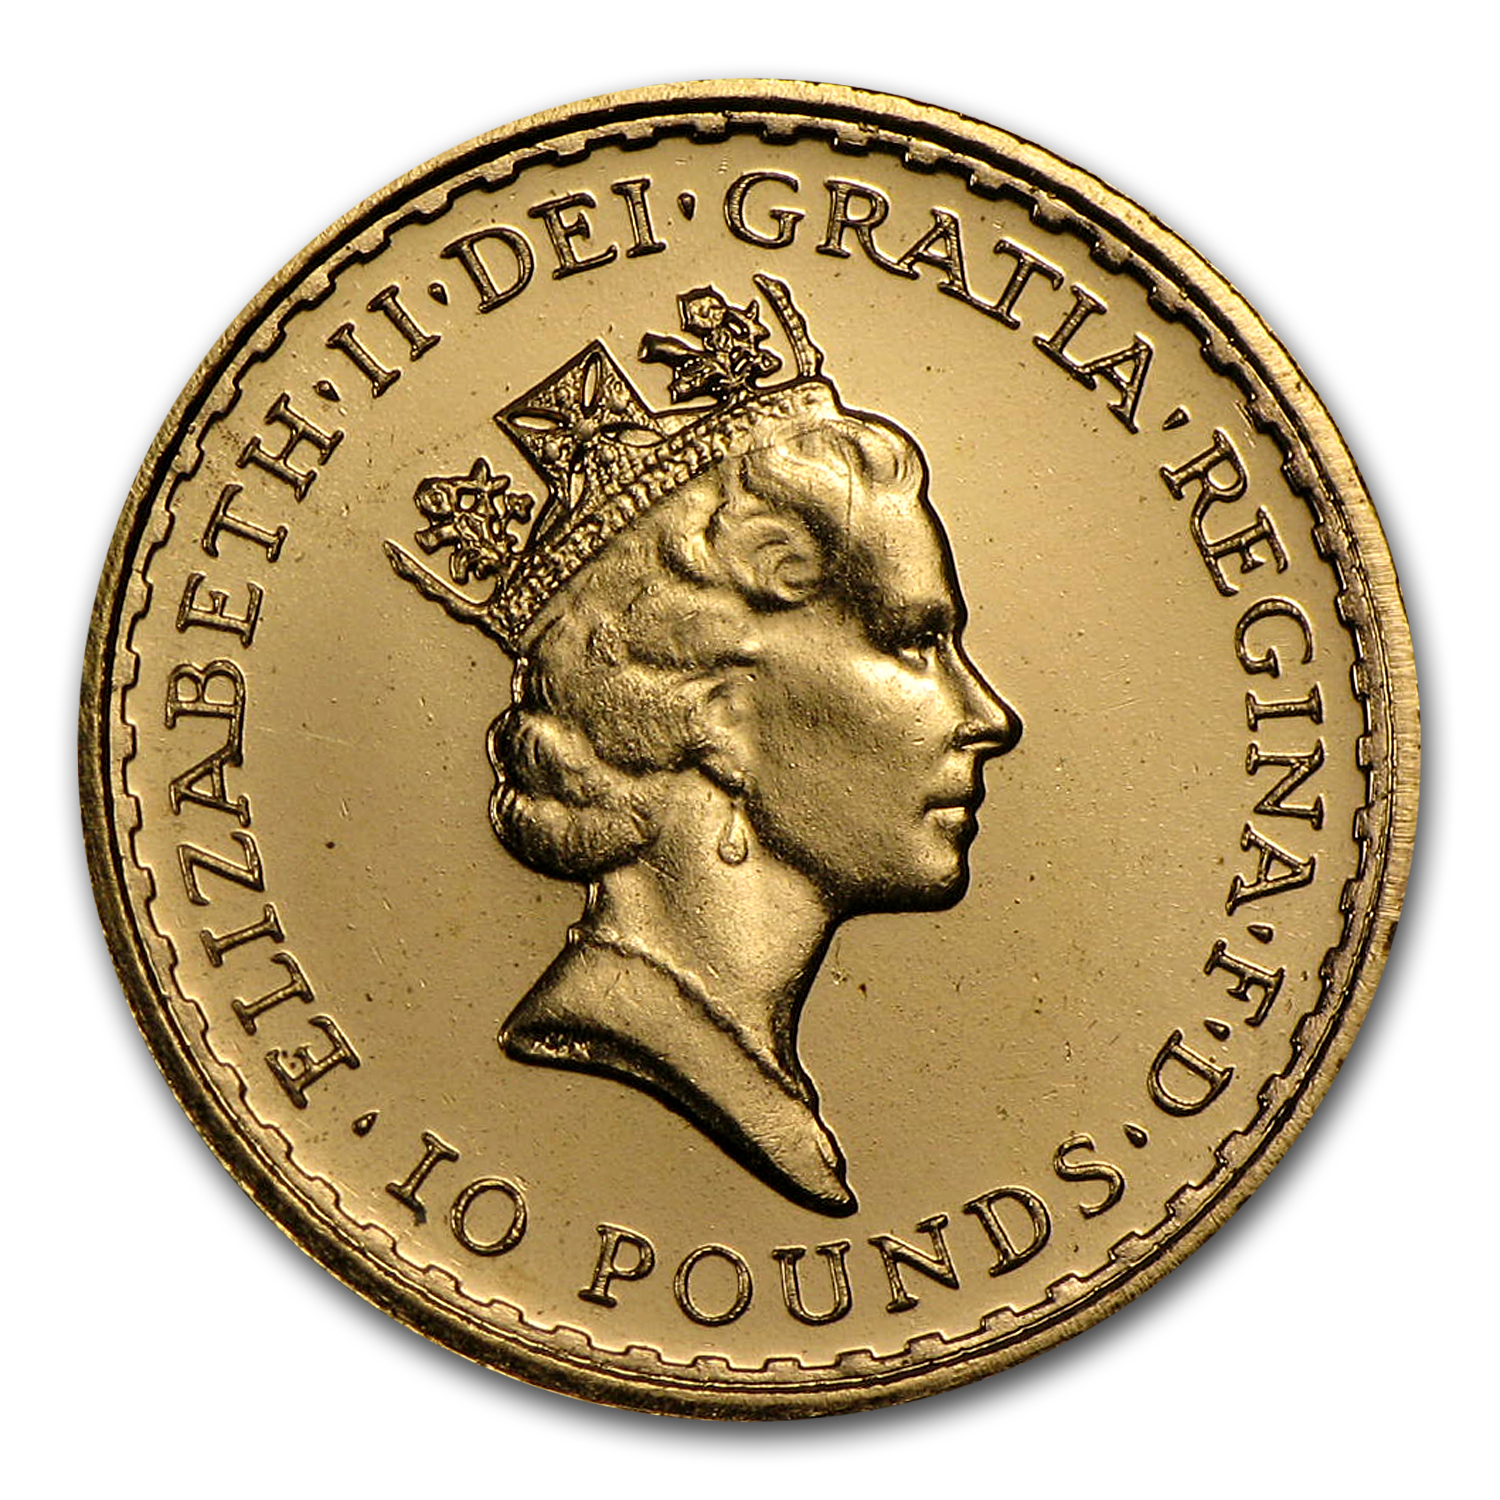 1987 1/10 oz Proof Gold Britannia